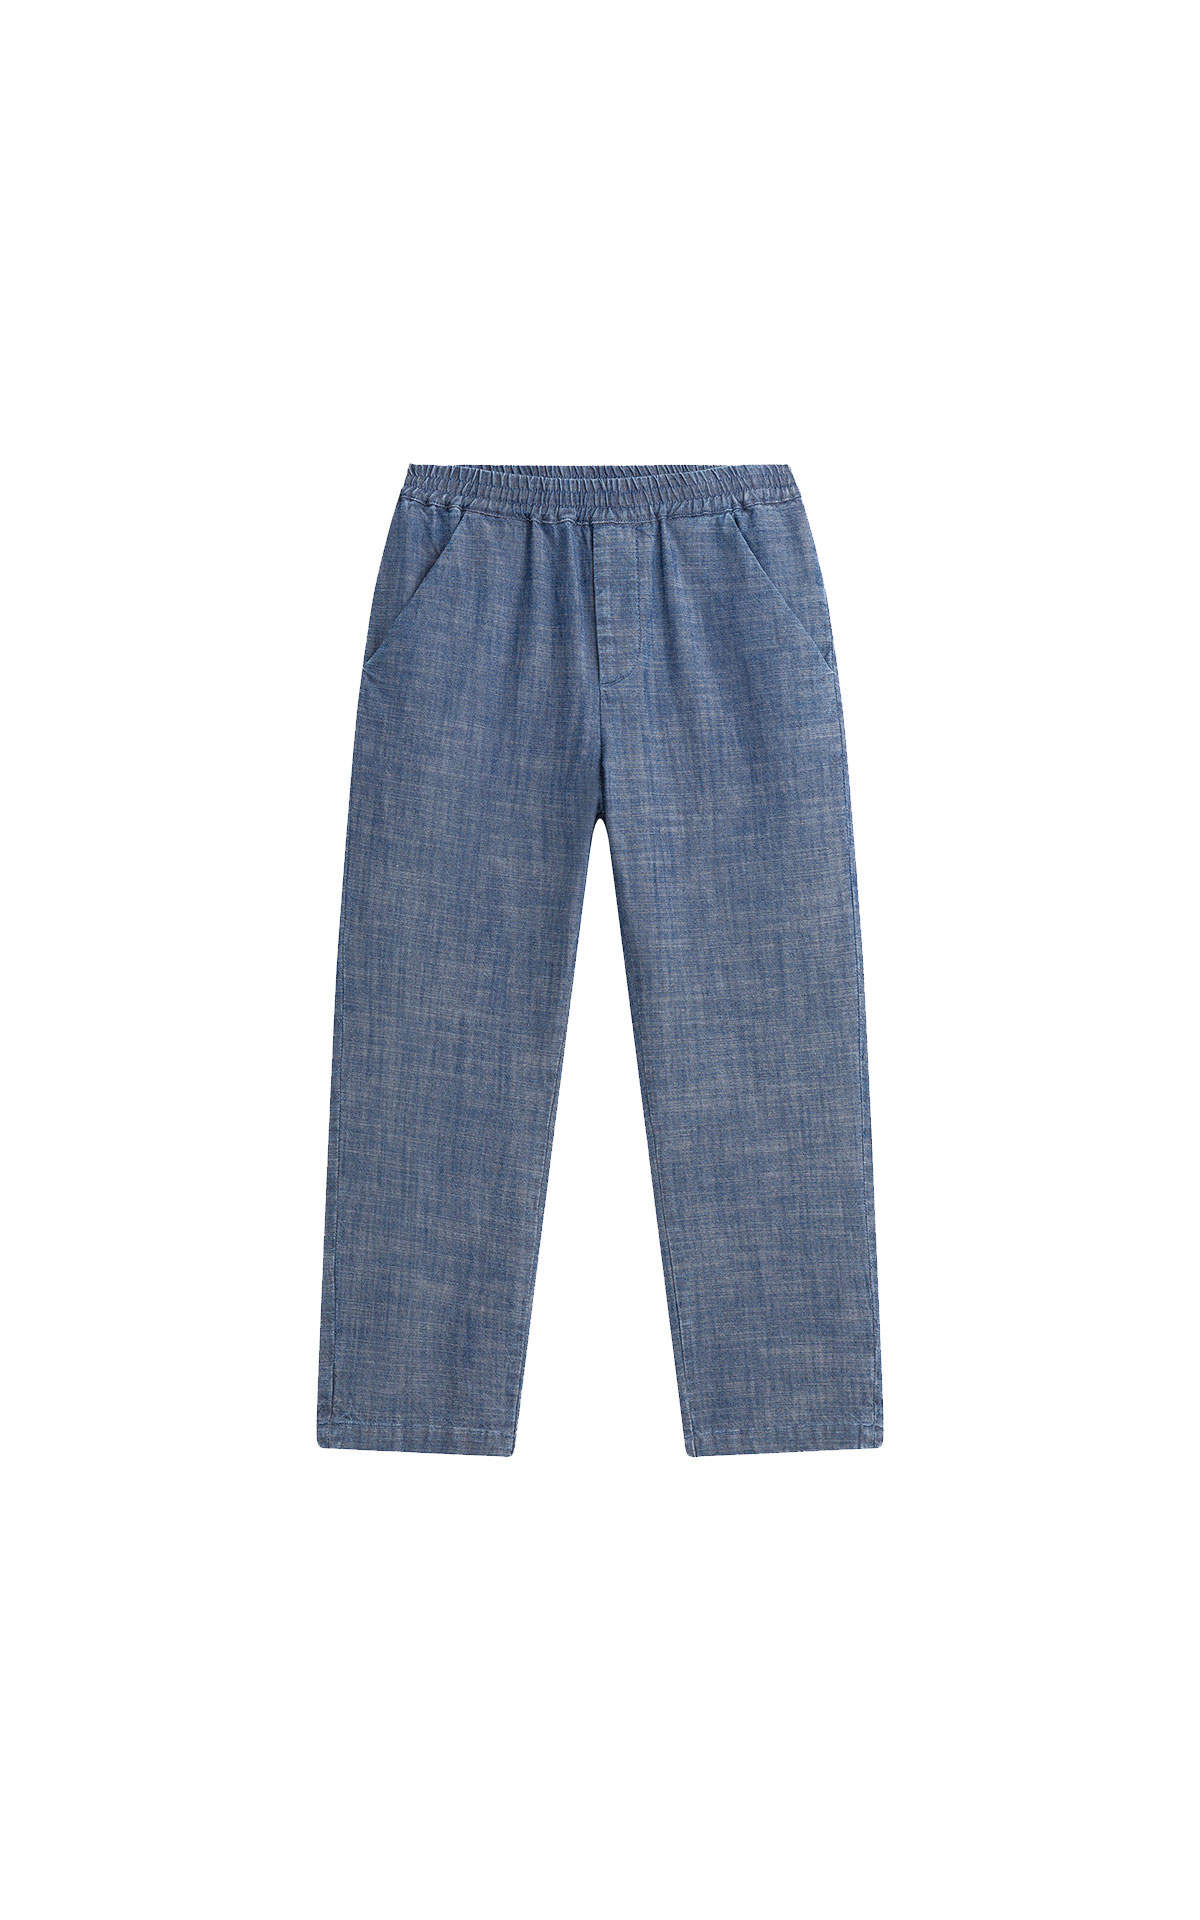 Bonpoint Chambray trousers from Bicester Village